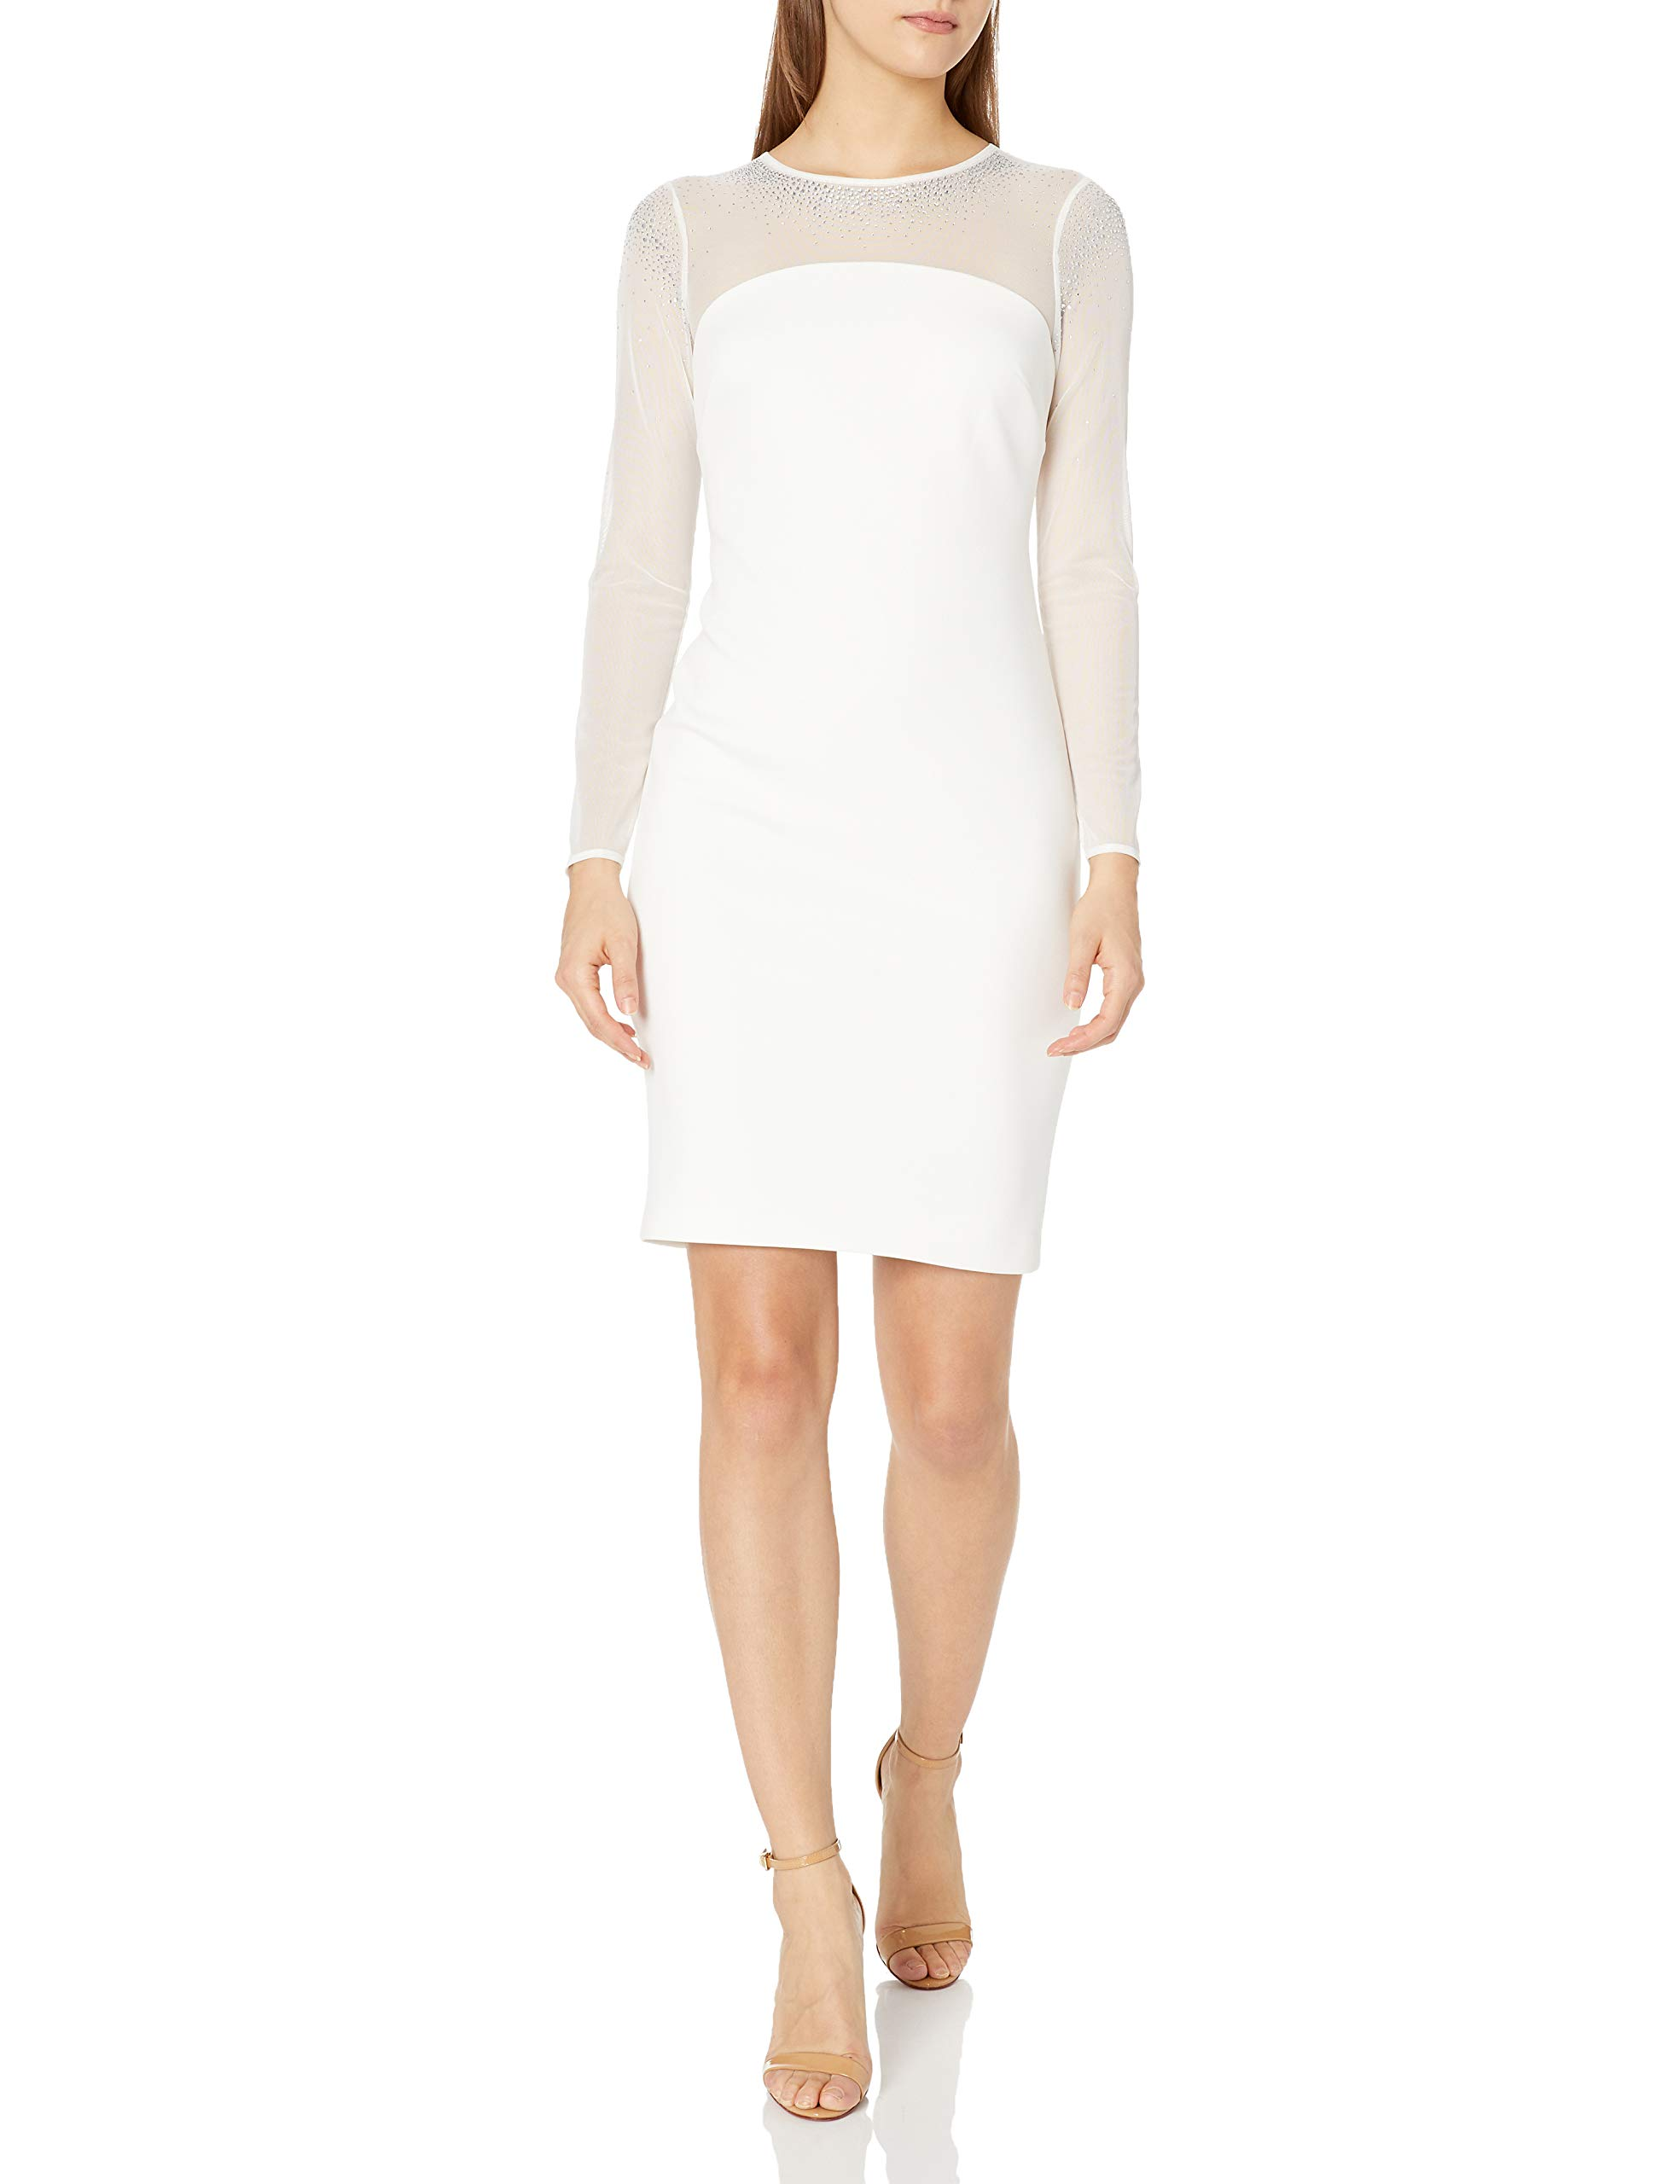 Available at Amazon: Calvin Klein Women's Petite Sheath with Illusion Neck and Sleeves